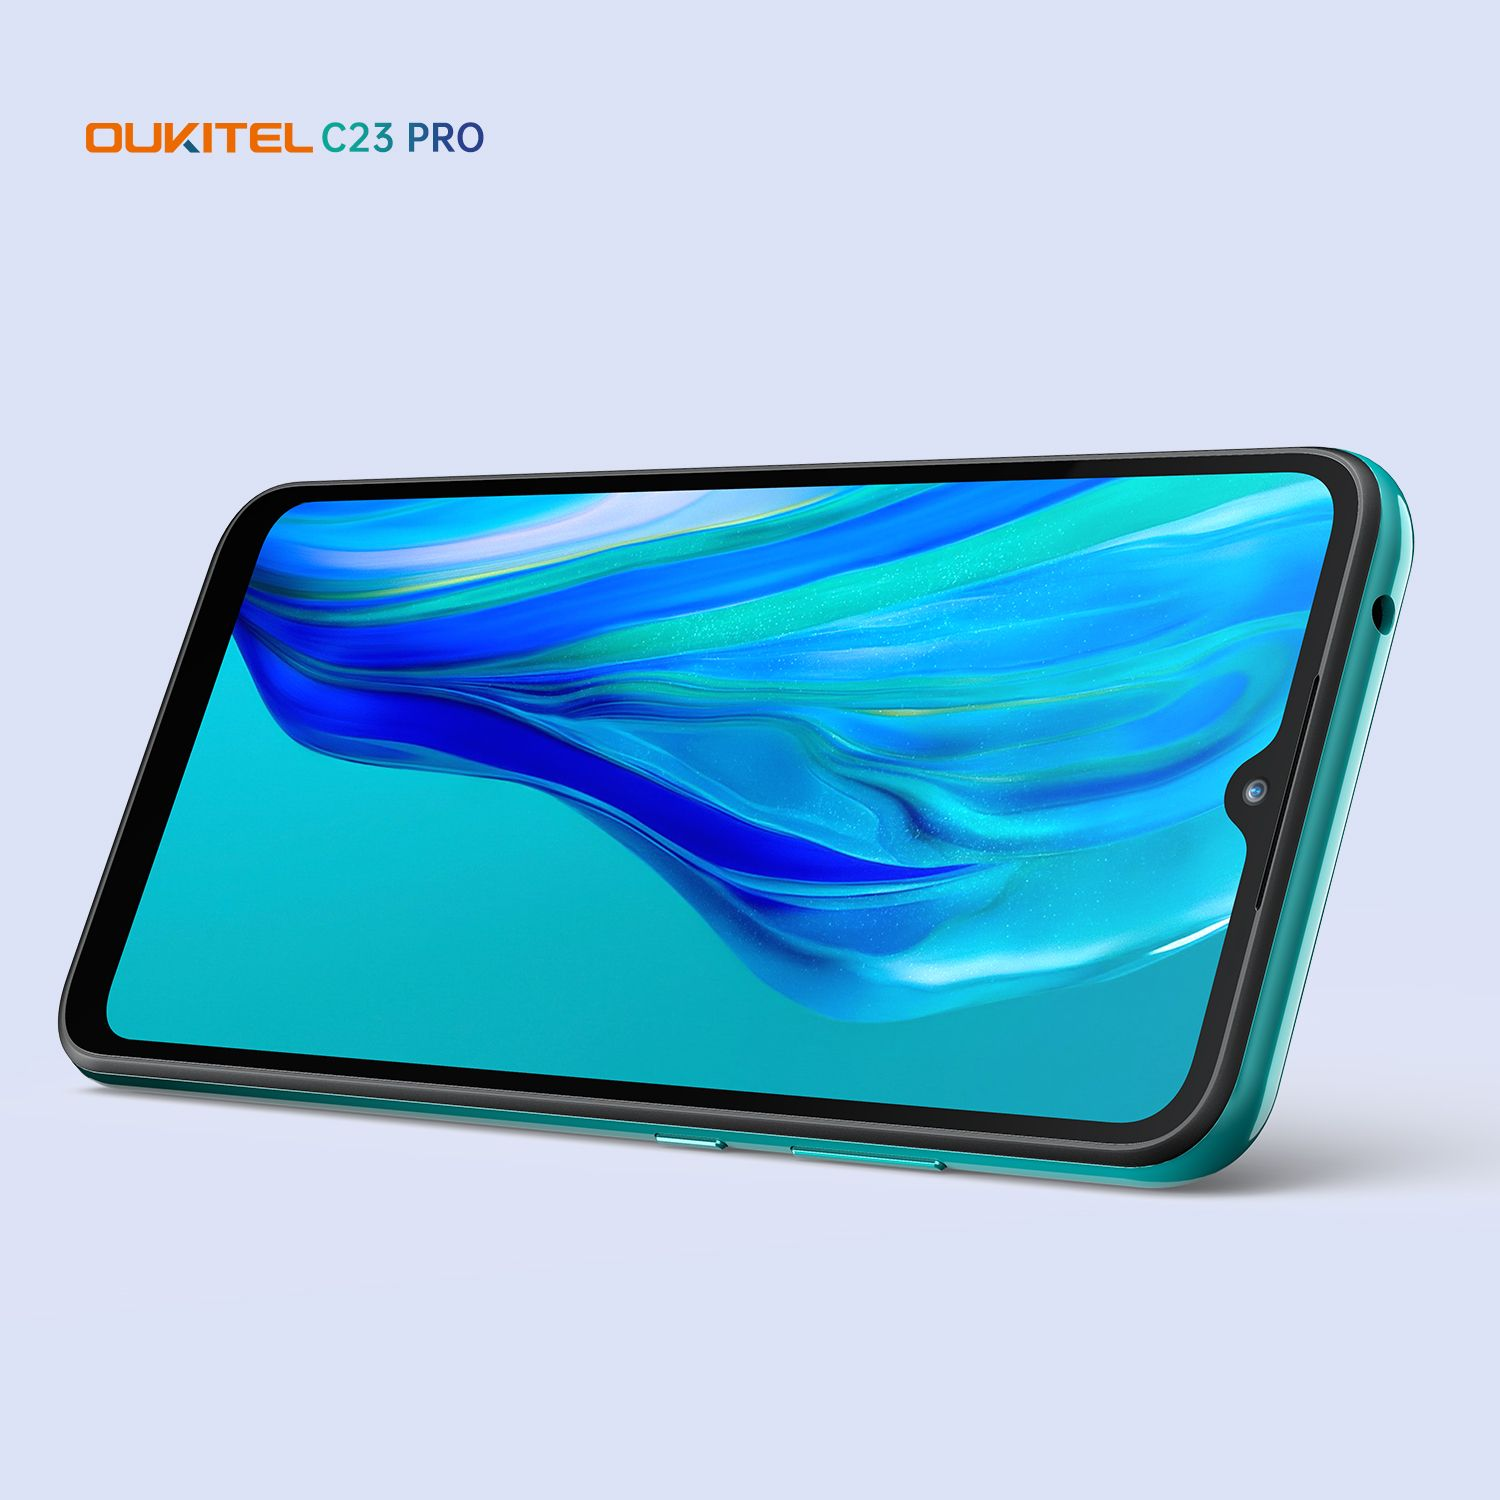 Experience the magnificent visuals with 6.5inch big water-drop style full view display of #OukitelC23Pro😍 Get ready to grab this budget smartphone at $99.99 only from Mar 29th - April 4th📣